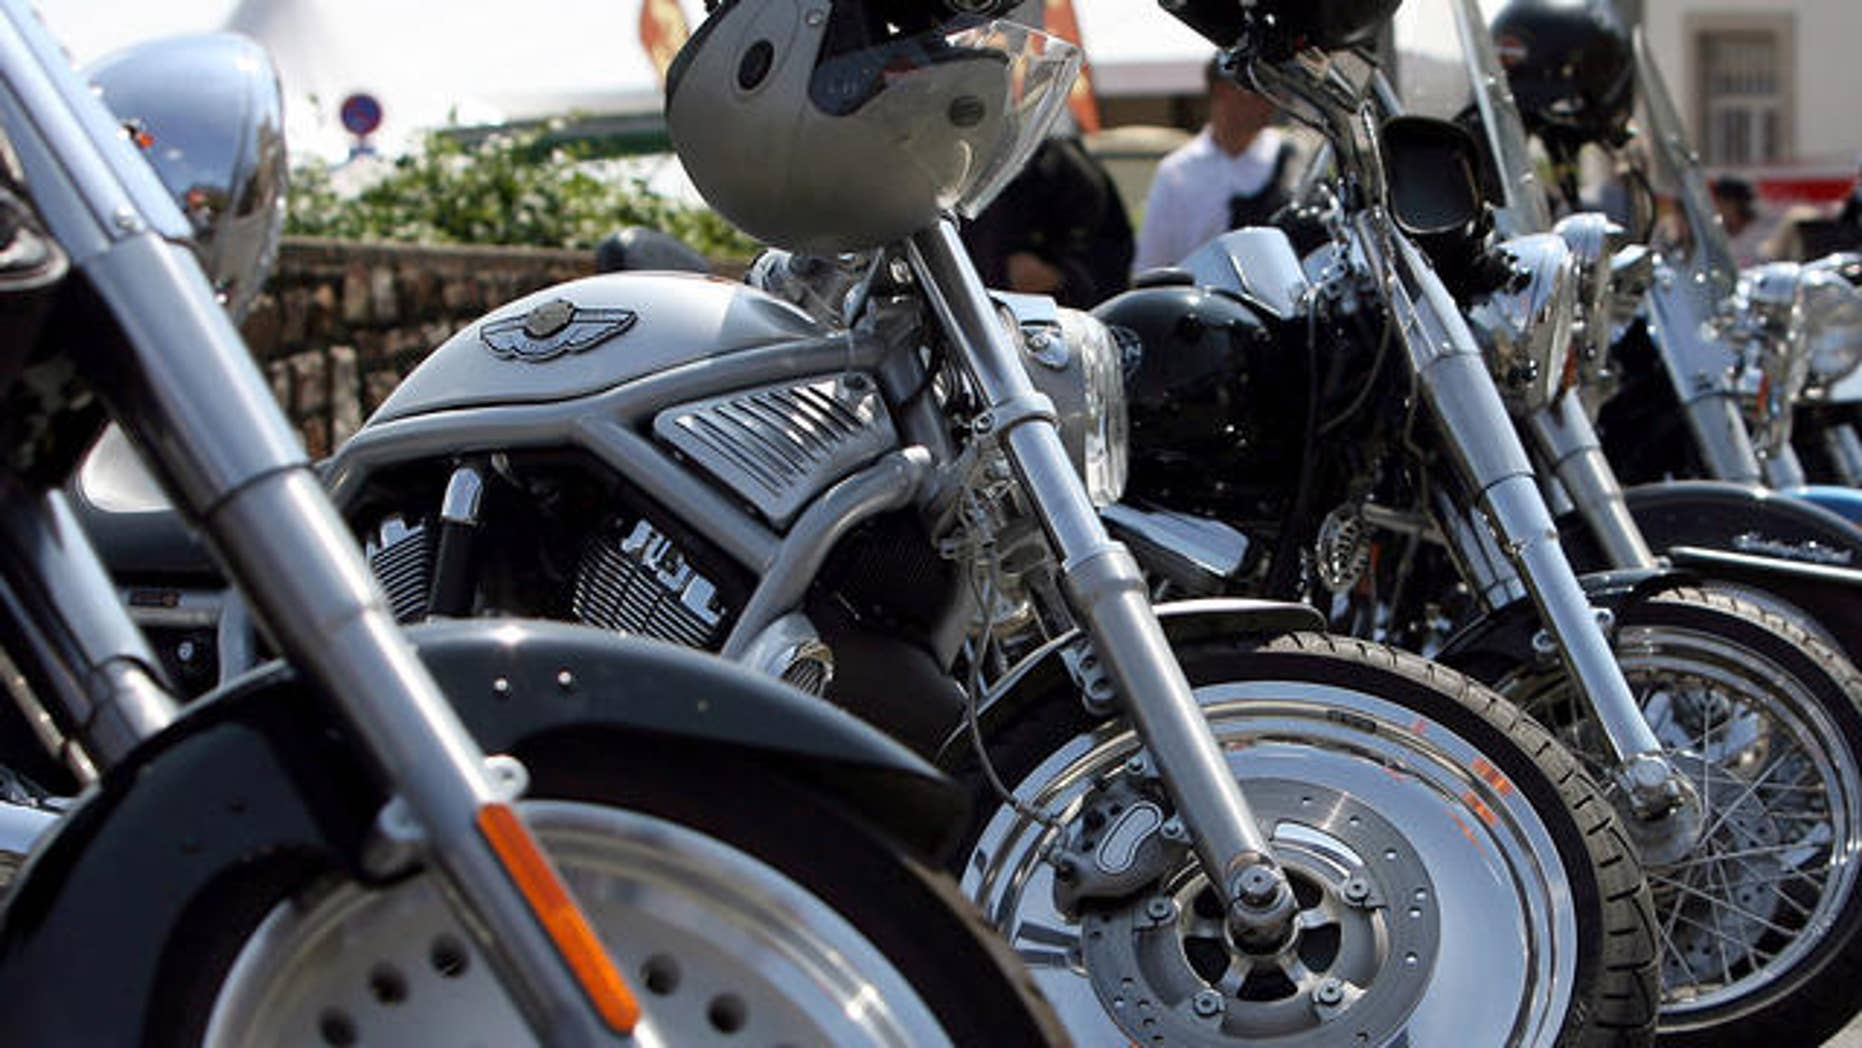 Motorcyclists Face Terrorism Charges Thanks to Noisy